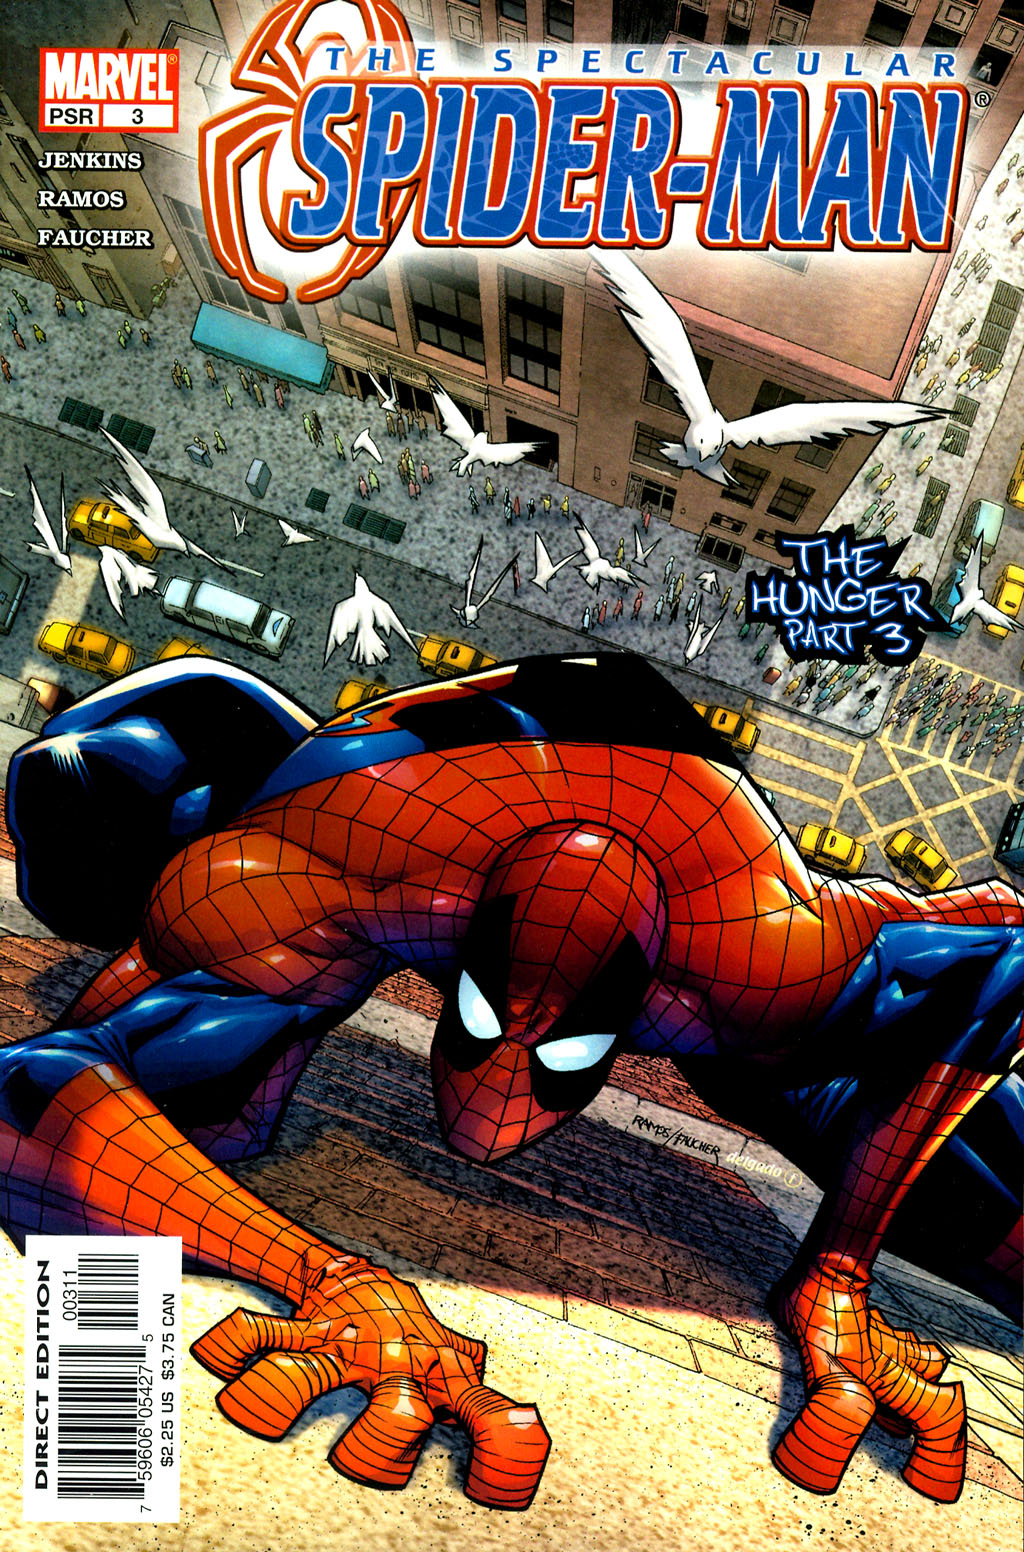 The Spectacular Spider-Man (2003) 3 Page 1